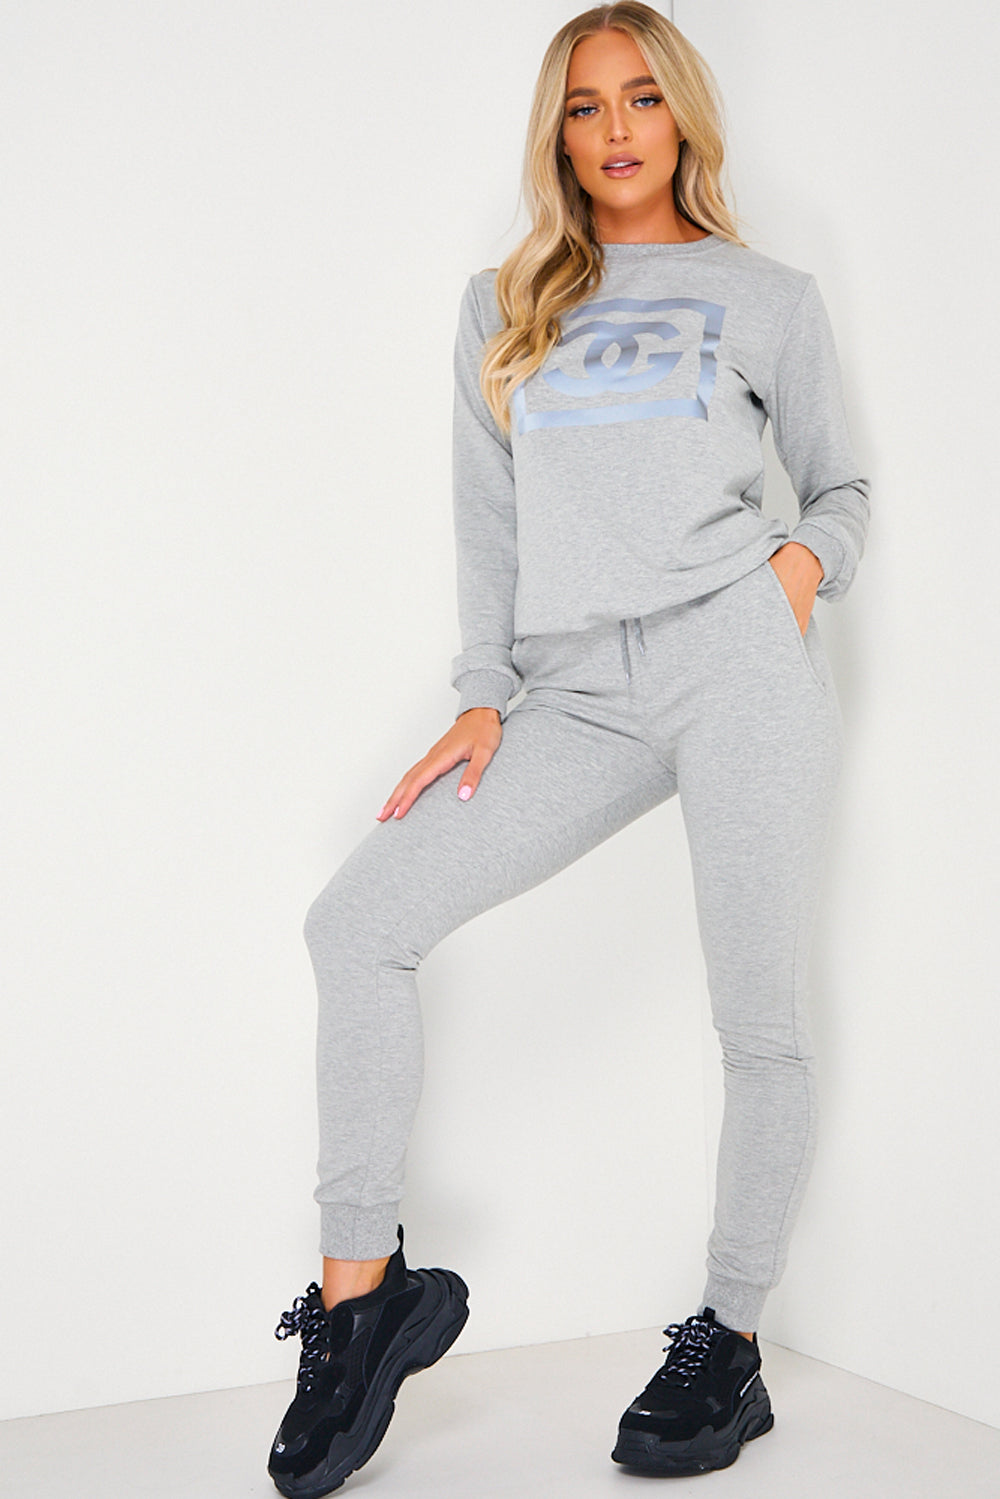 Grey CG Printed Jumper and Joggers Tracksuit Set